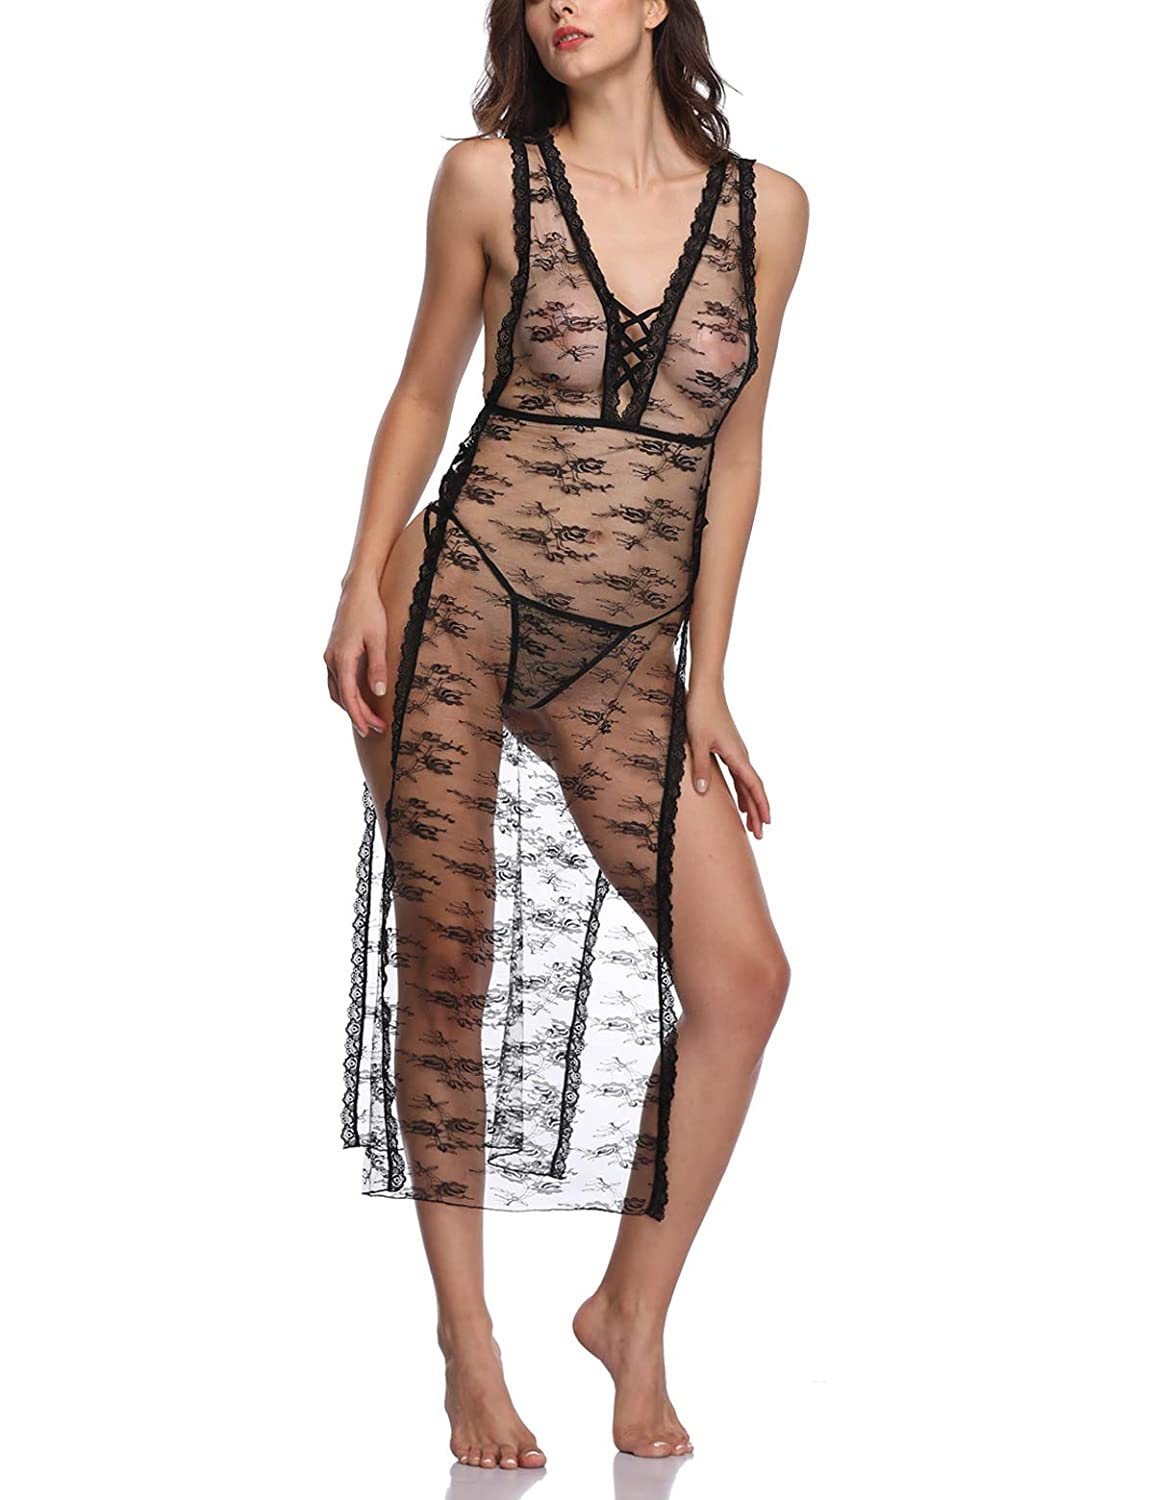 ddf8f79a78 Amazon.com  Women Sexy Lace Sleeping Sheer Gown Dress See Through Long  Nightgown Deep Plunge V Lingerie  Clothing